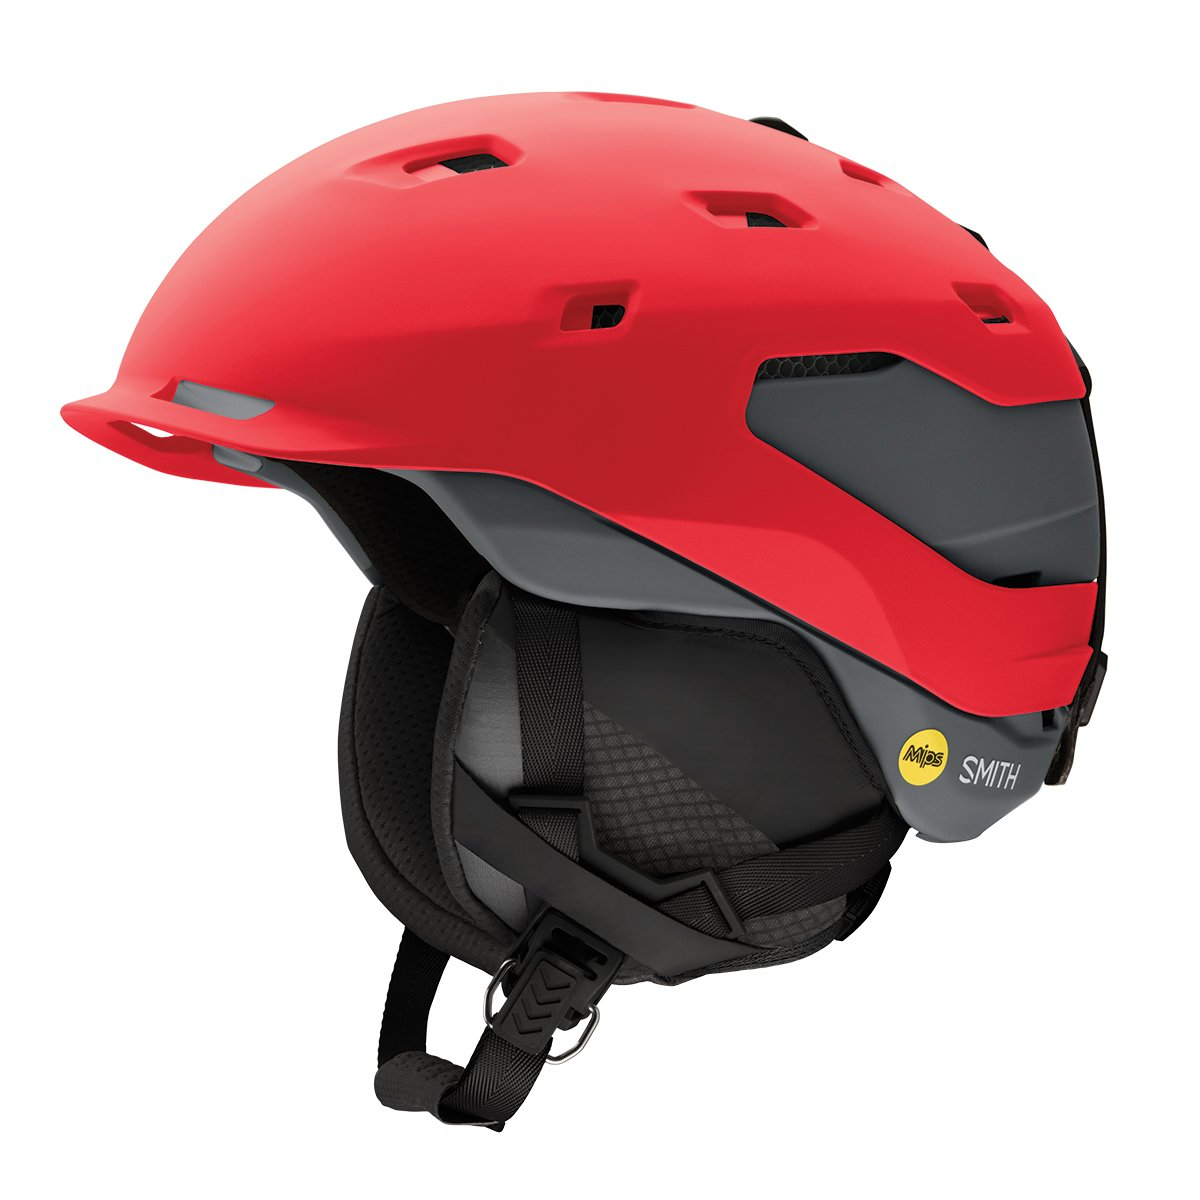 Smith Quantum Mips Snow Helmet - Matte Fire / Charcoal (Medium) by Smith Optics